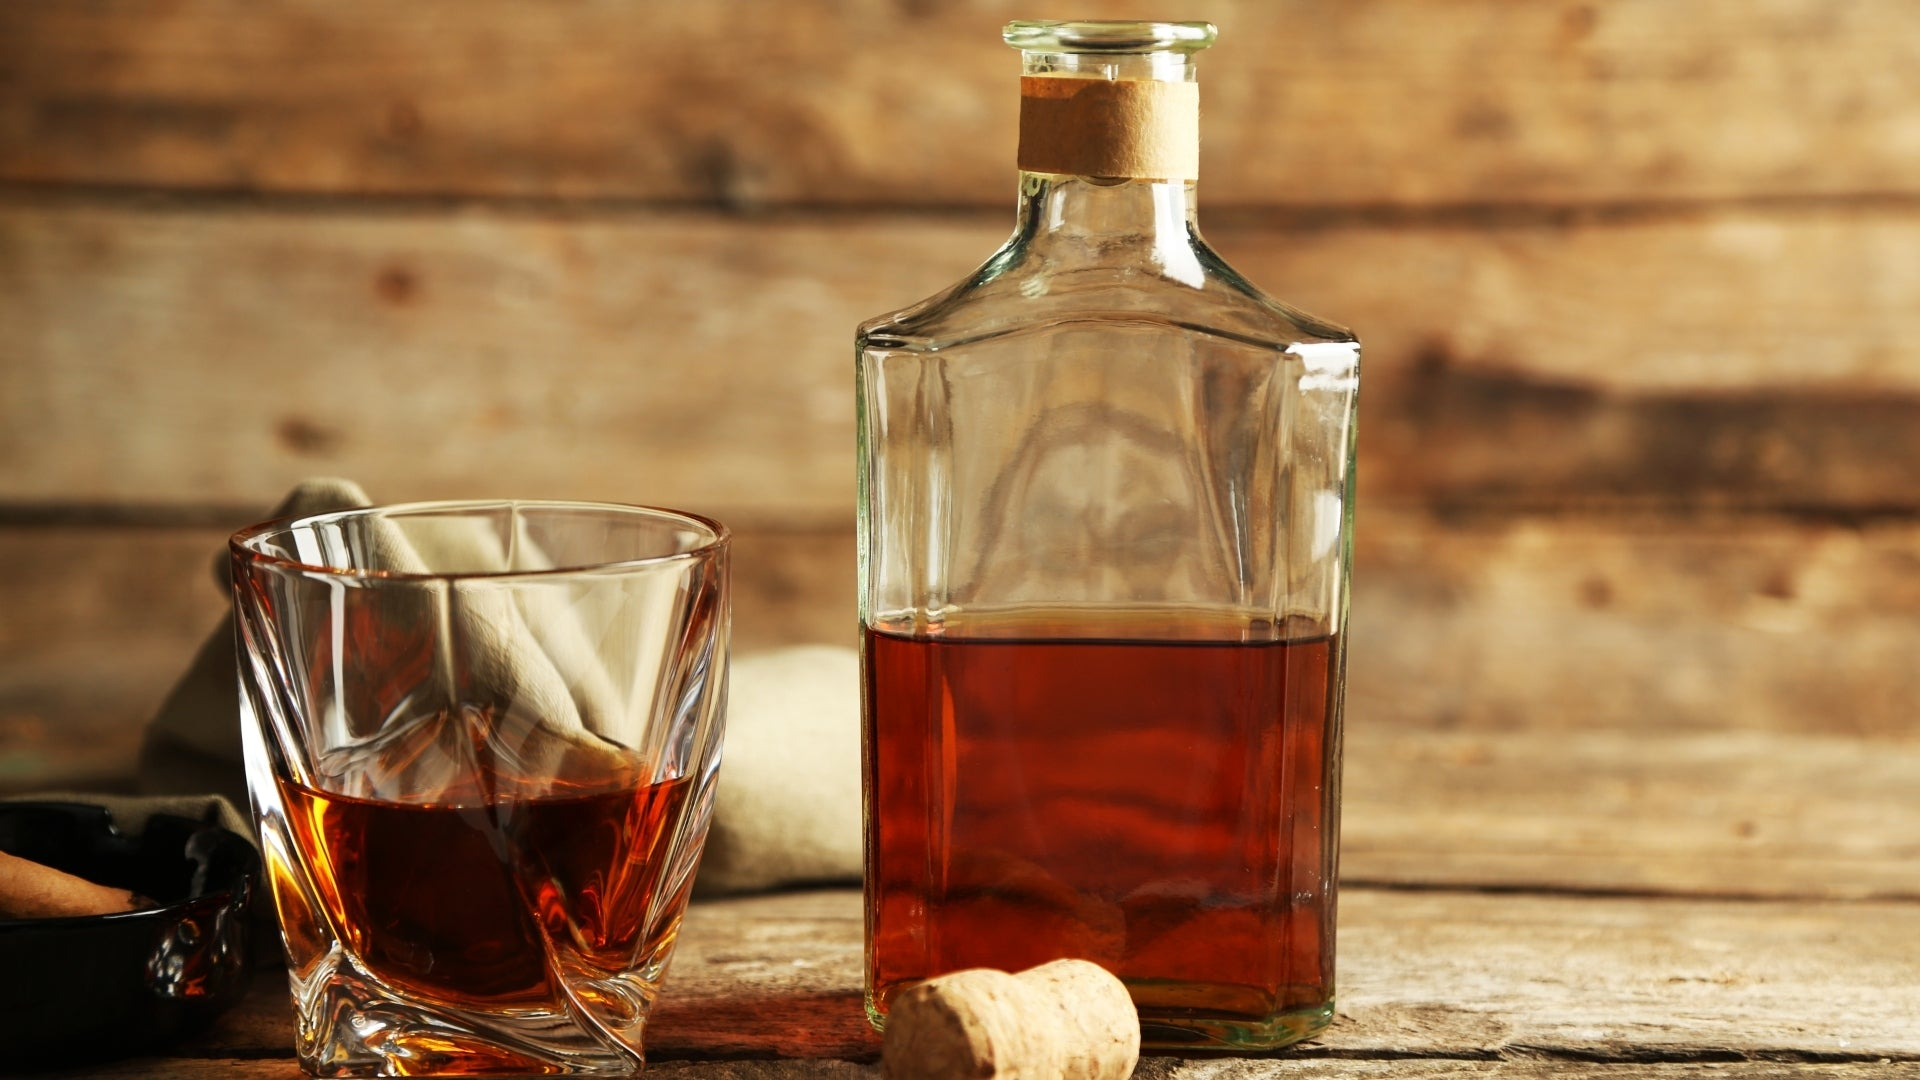 How to make whiskey at home